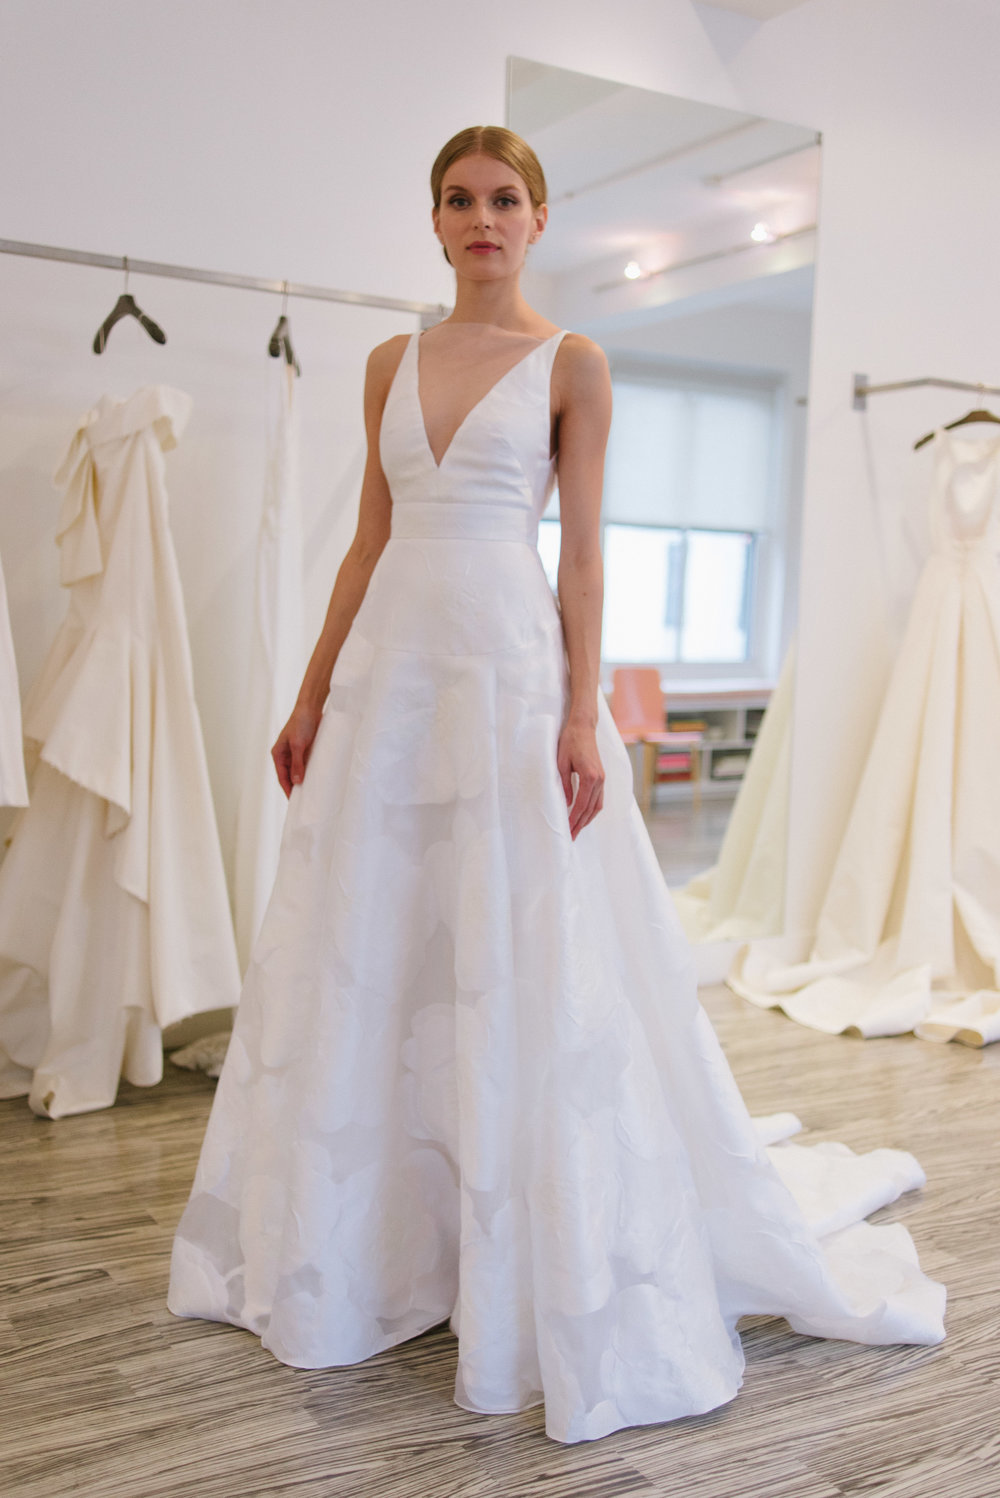 New York Bridal Fashion Week 2016 | Lela Rose Fall 2017 collection | Little White Dress Bridal Shop in Denver